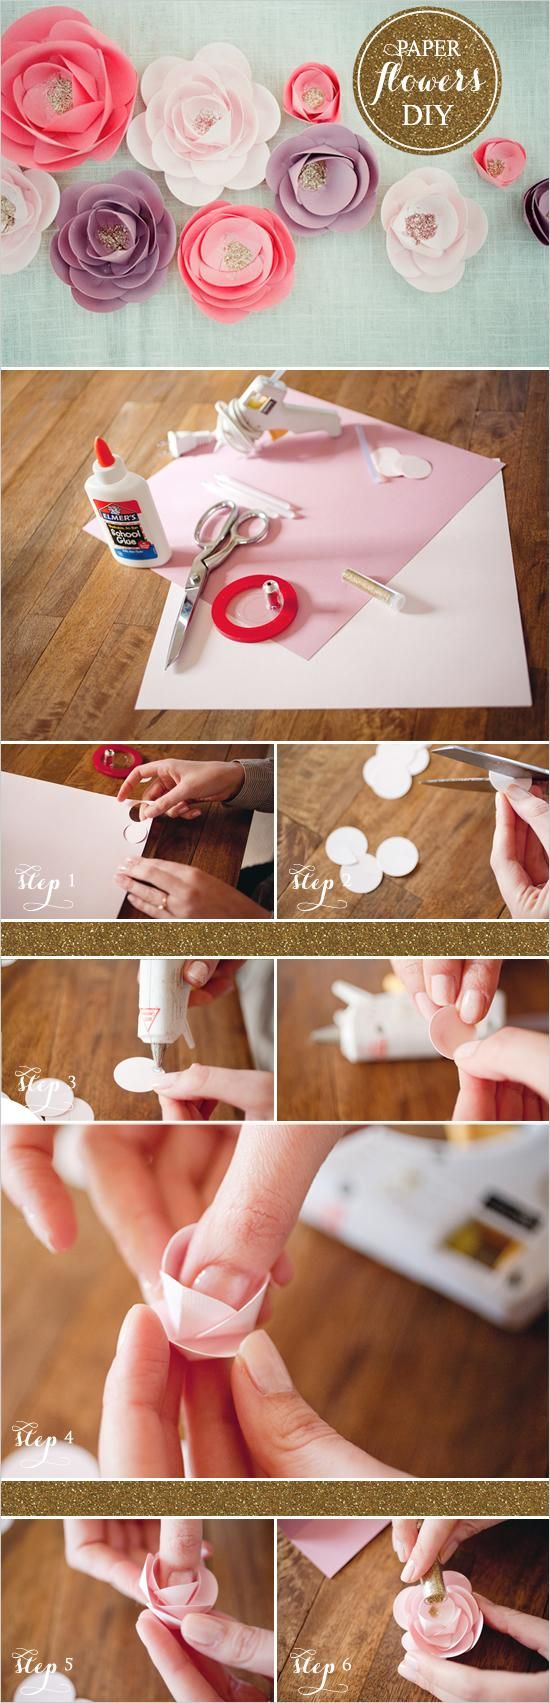 DIY Tutorial: DIY Wedding Crafts / DIY Paper Flowers for Corsages and Boutonnieres - Bead&Cord